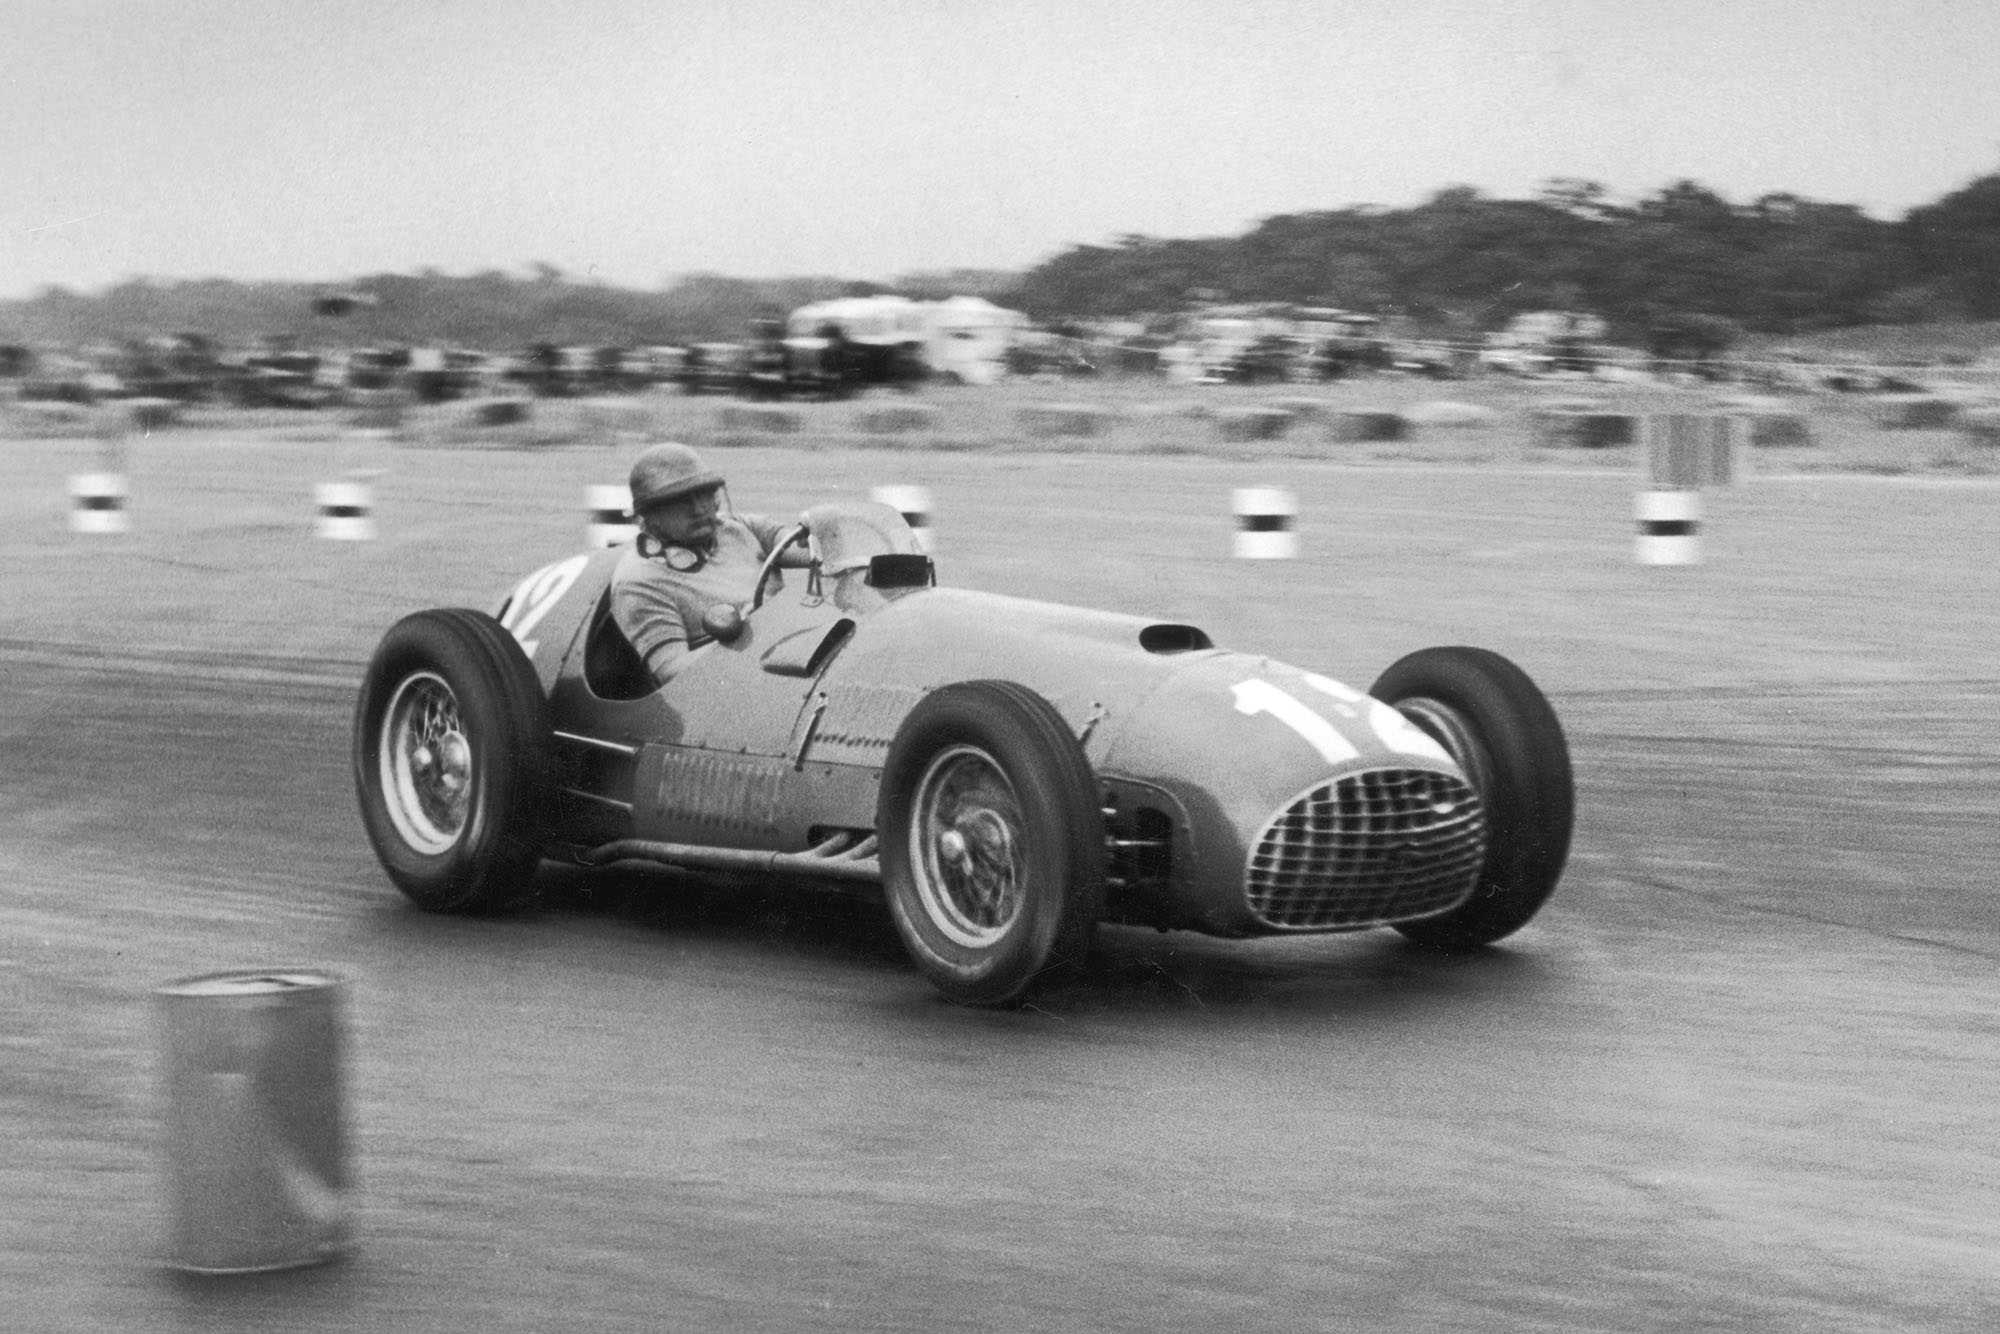 28th July 1951: Froilan Gonzalez in his Ferrari 375 on his way to victory in the British Grand Prix at Silverstone